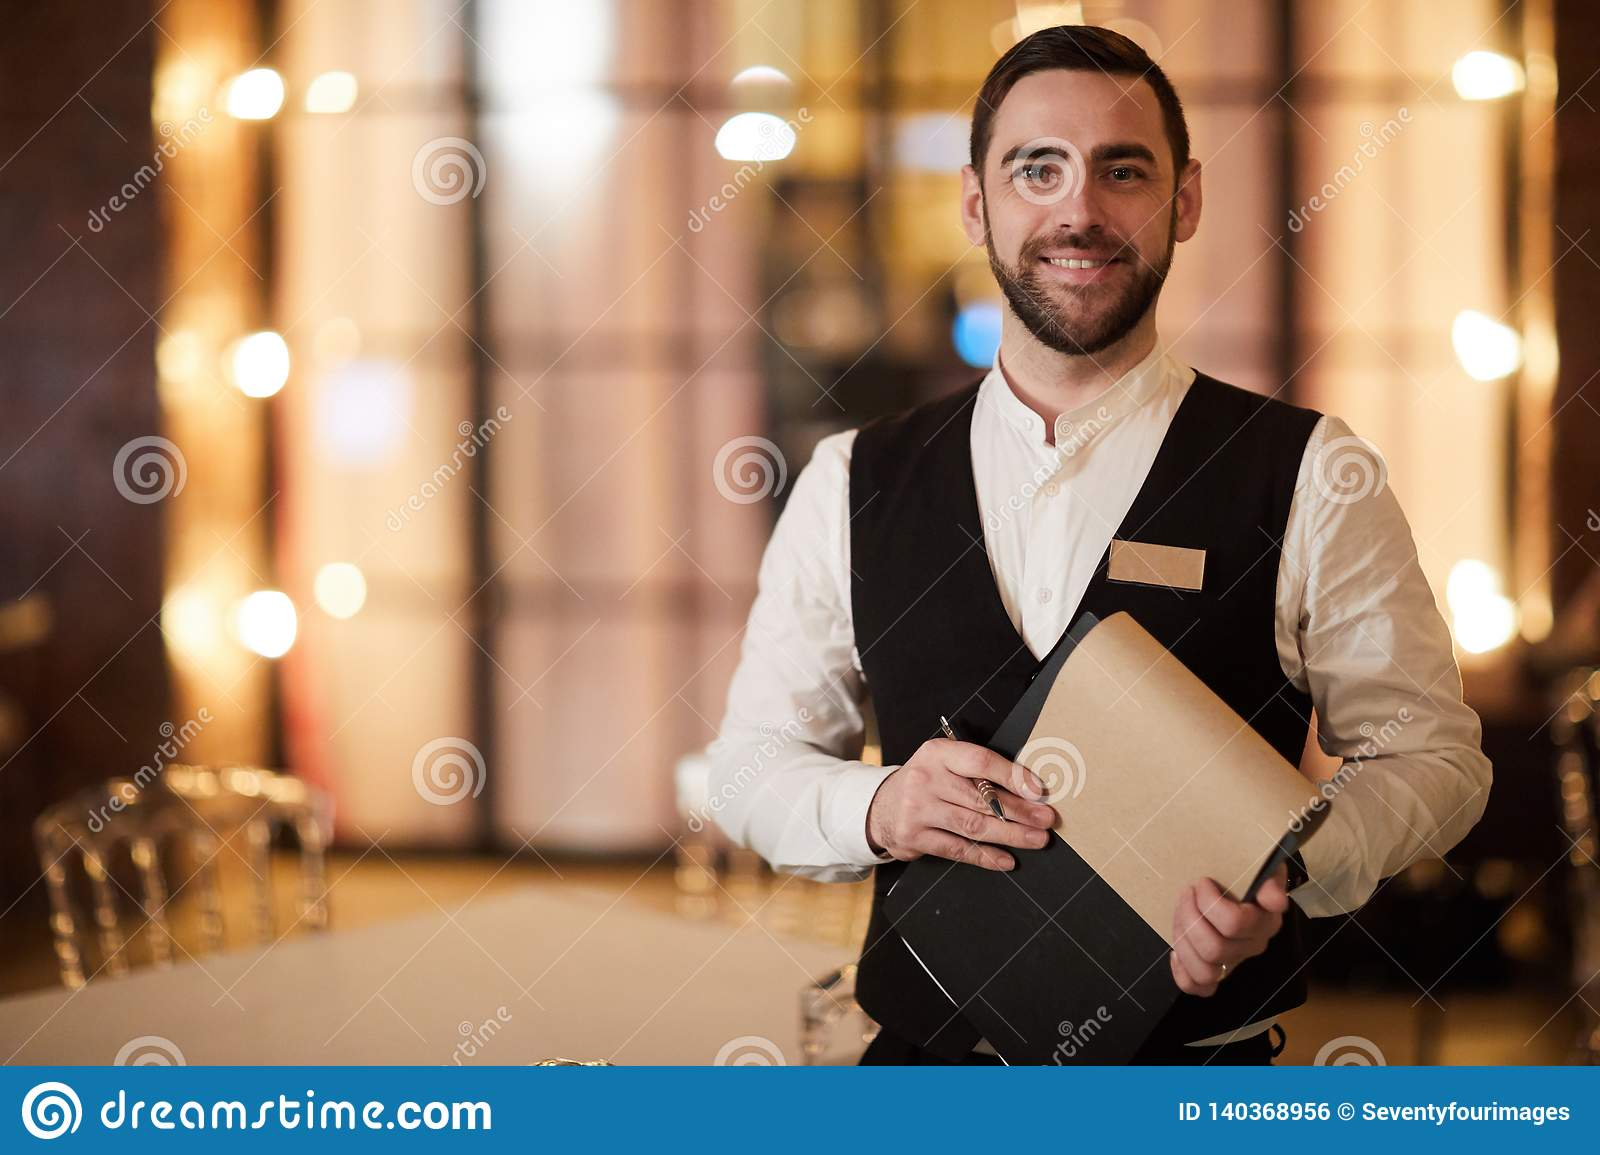 Profesional Waiter In Restaurant Stock Photo Image Of Menu Expensive 140368956